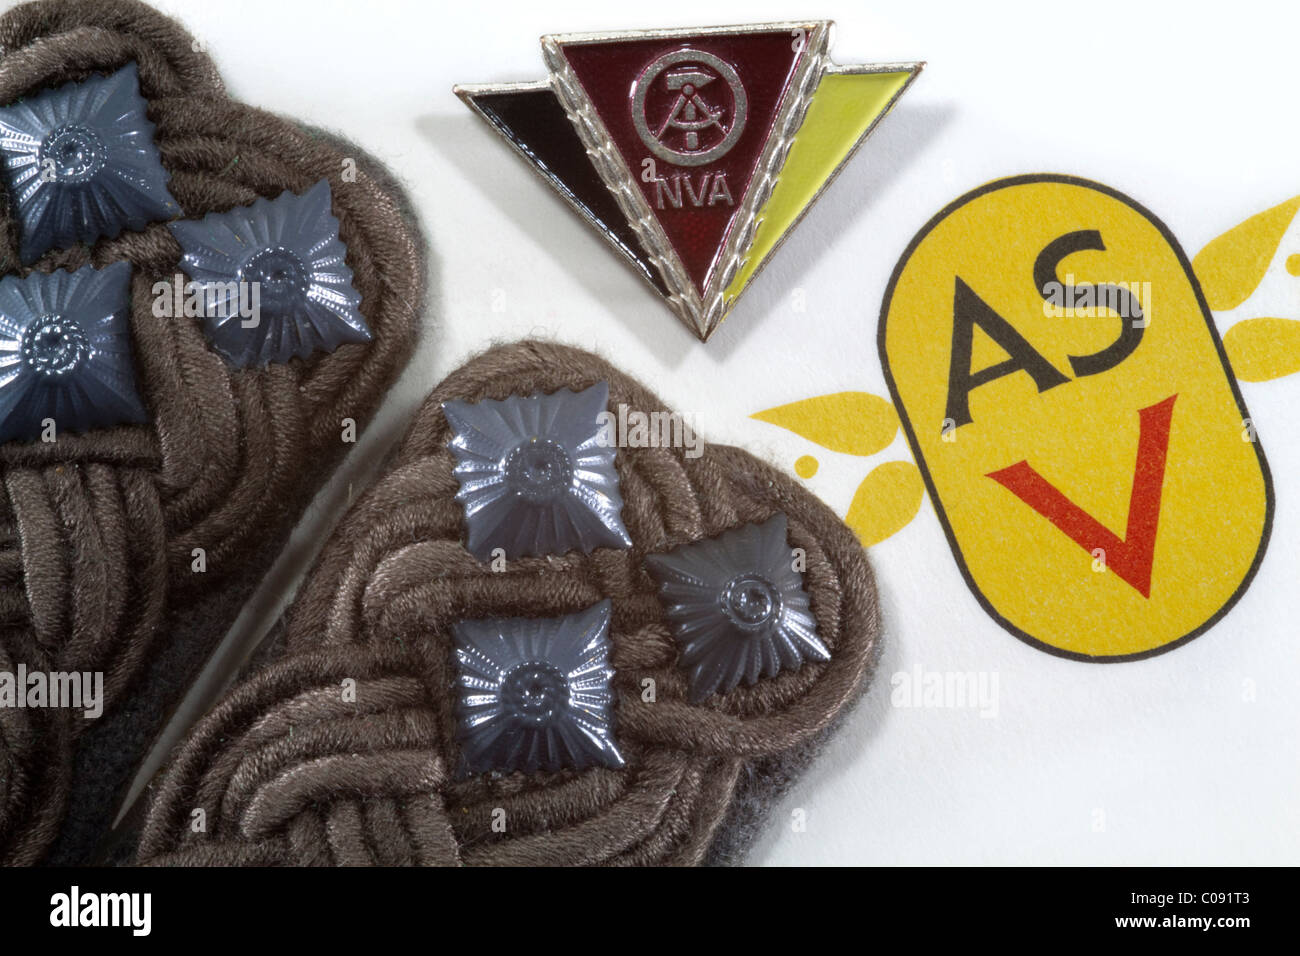 DDR: Army Sports Club forward and National People's Army (NVA) - Stock Image